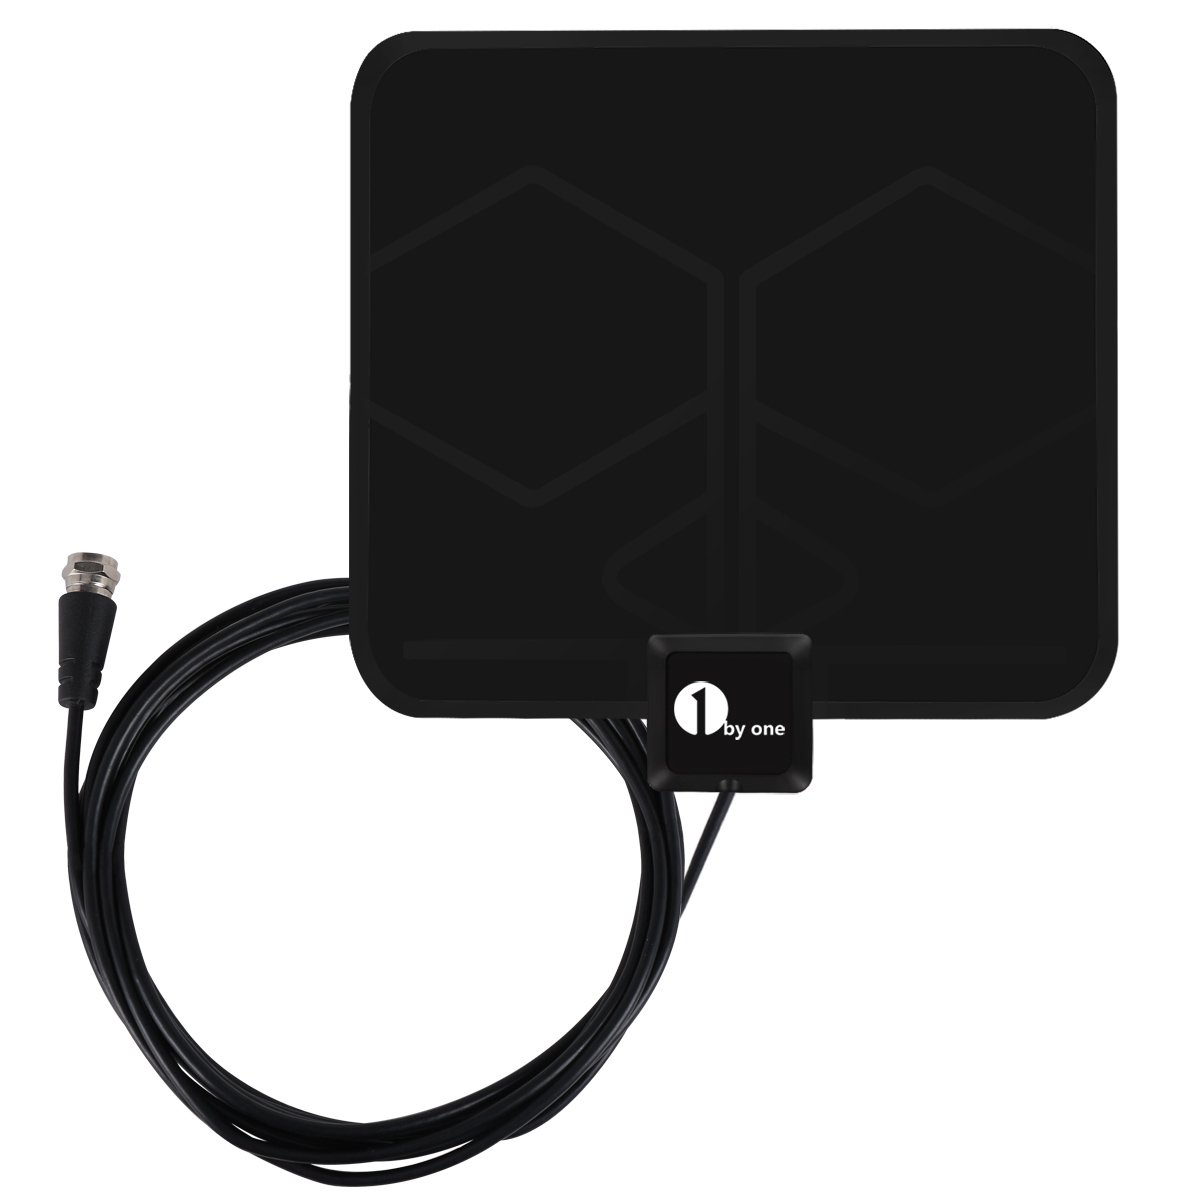 HDTV Antenna, 1byone Super Thin Digital Indoor HDTV Antenna - 25 Miles Range with 10ft High Performance Coax Cable, Extremely Soft Design and Lightweight